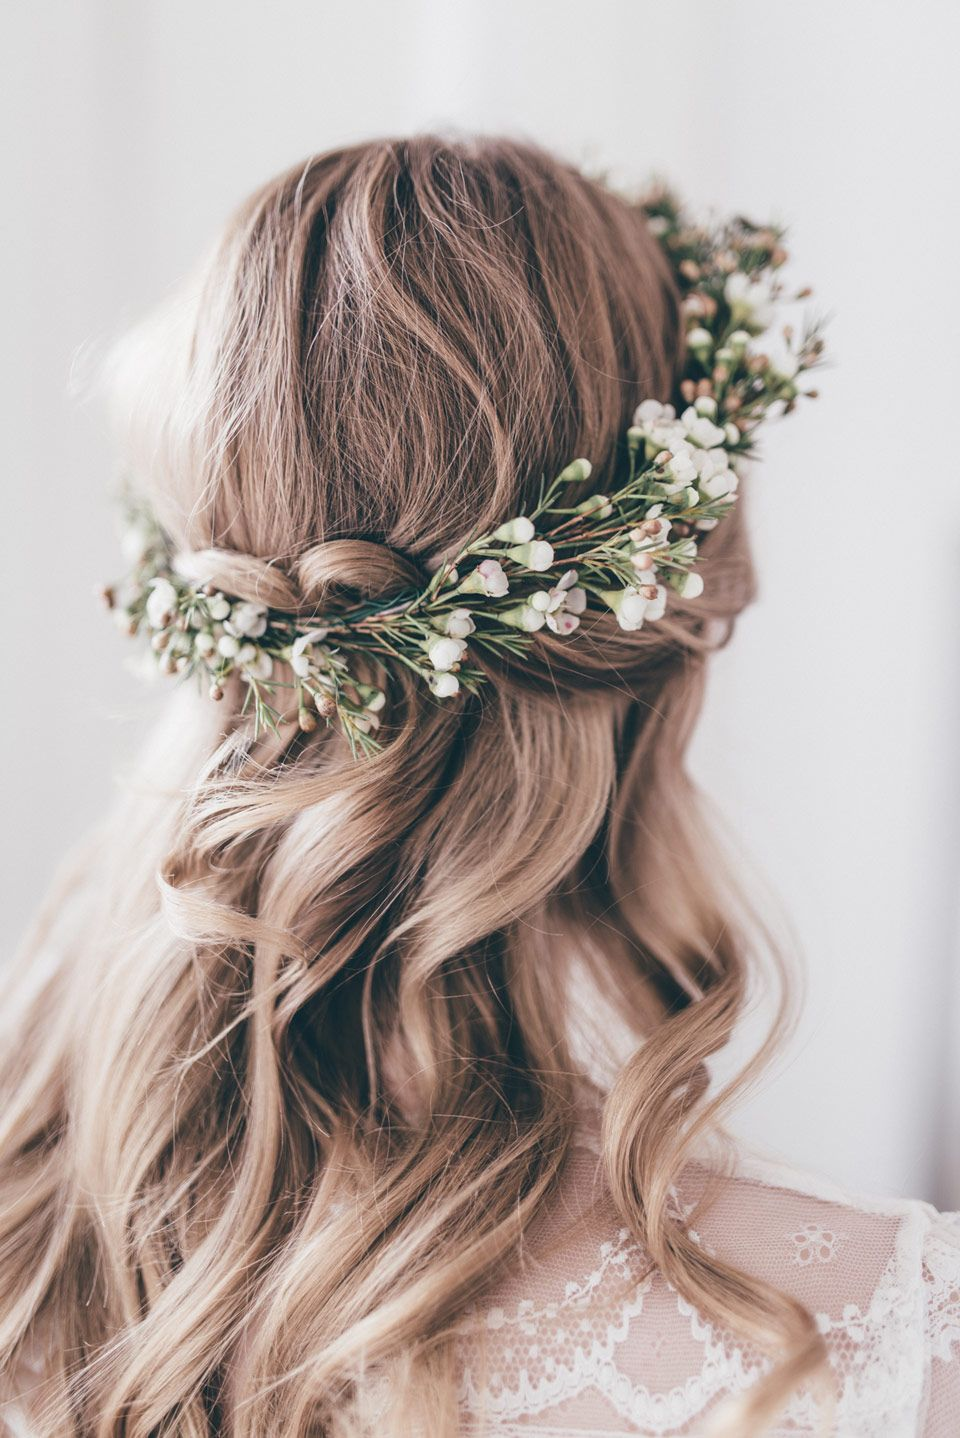 wedding hair inspiration with flower crown c1c9474f562